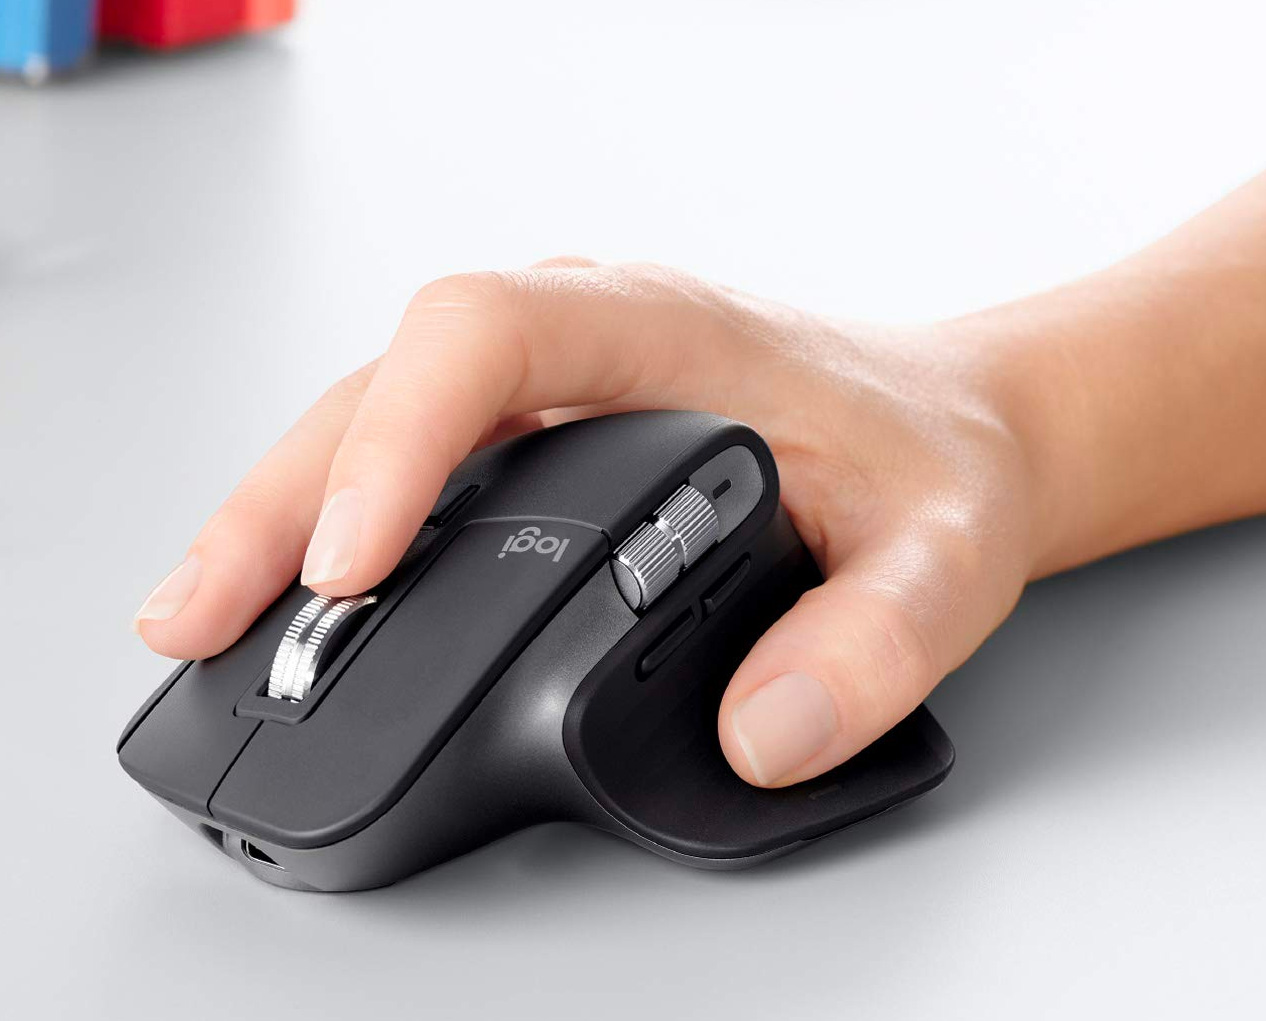 Logitech's MX Master 3 Mouse is Really a Handful at werd.com